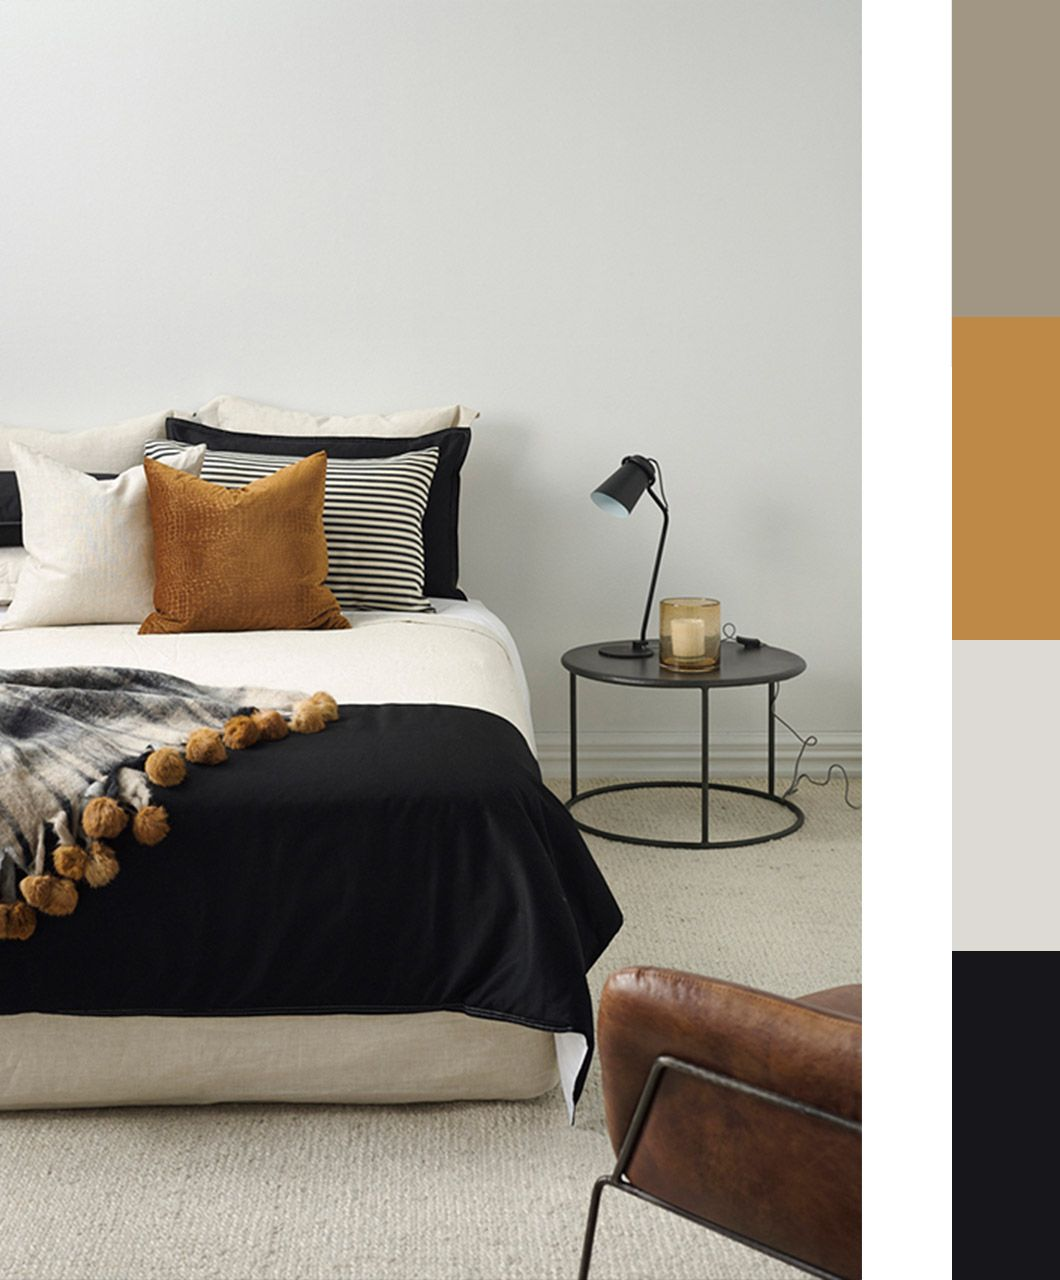 Bed Linen Ideas Part - 38: Bedroom Colour Palettes - Bedroom Linen Ideas - Autumn Bedroom Inspiration  #bedroom #colours #